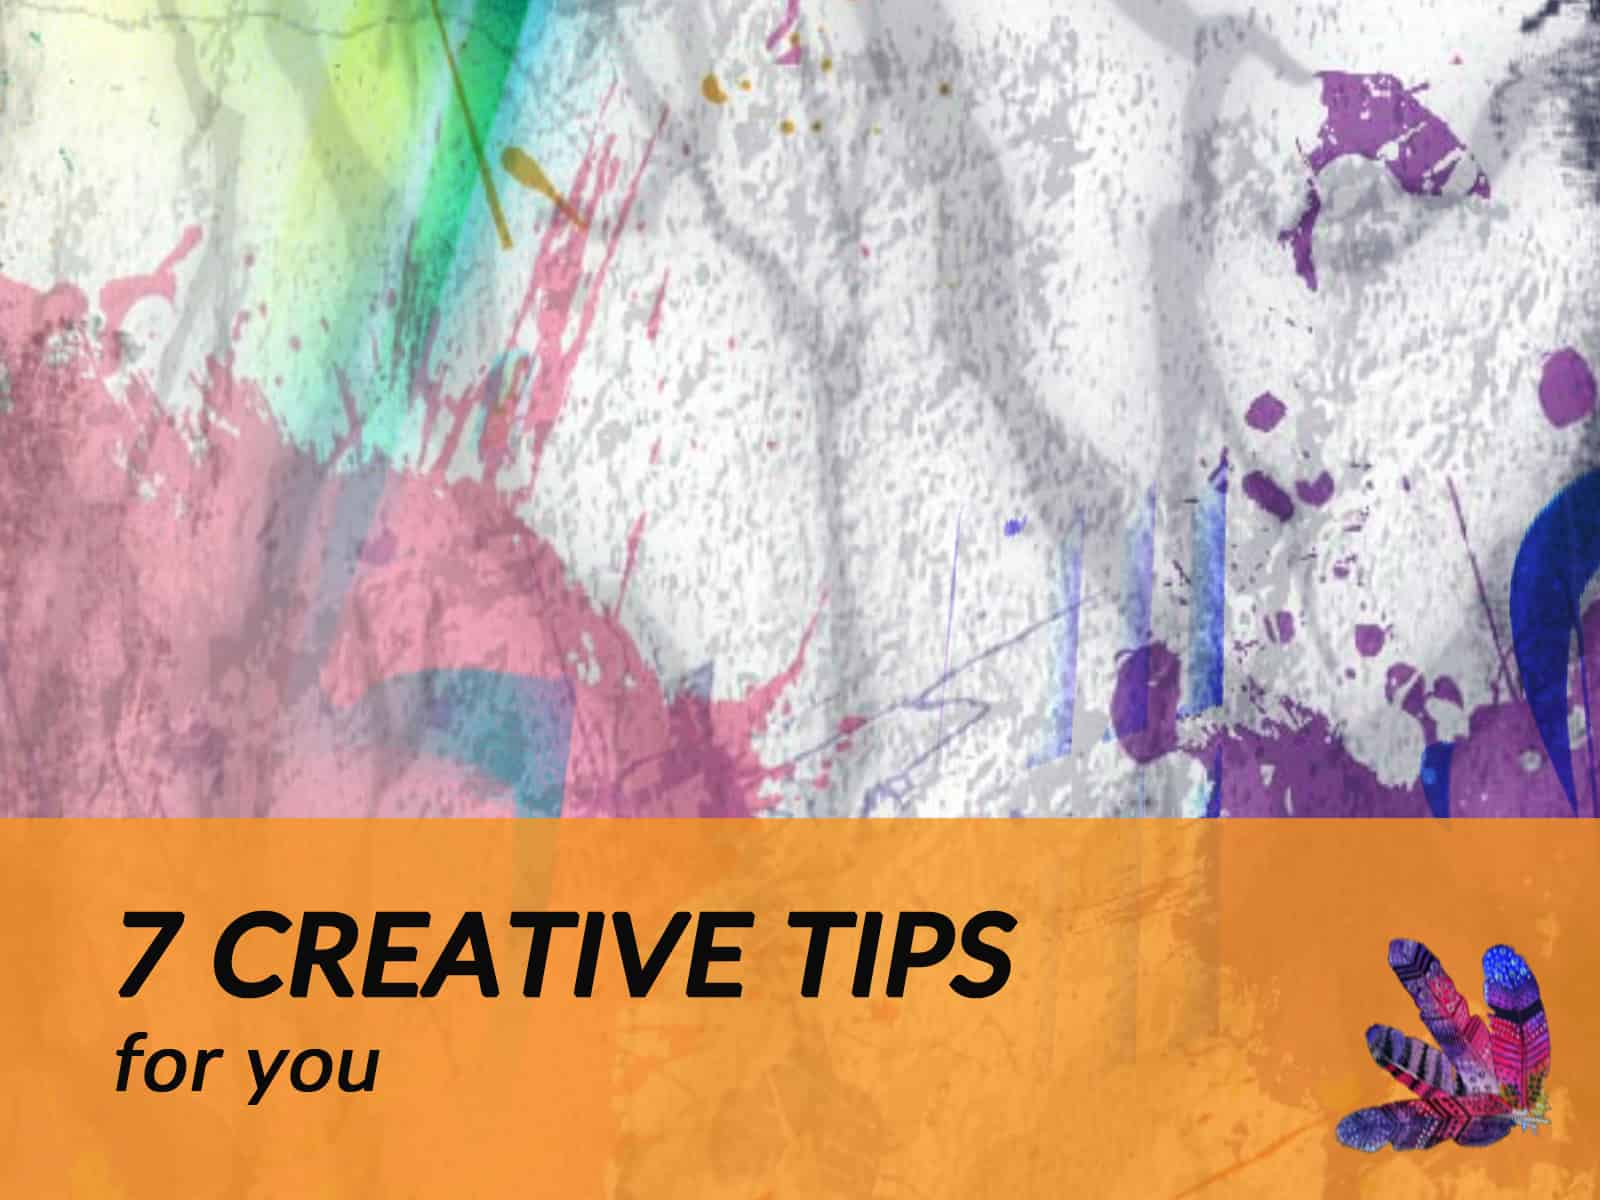 Rounding up 7 Creative Tips for You